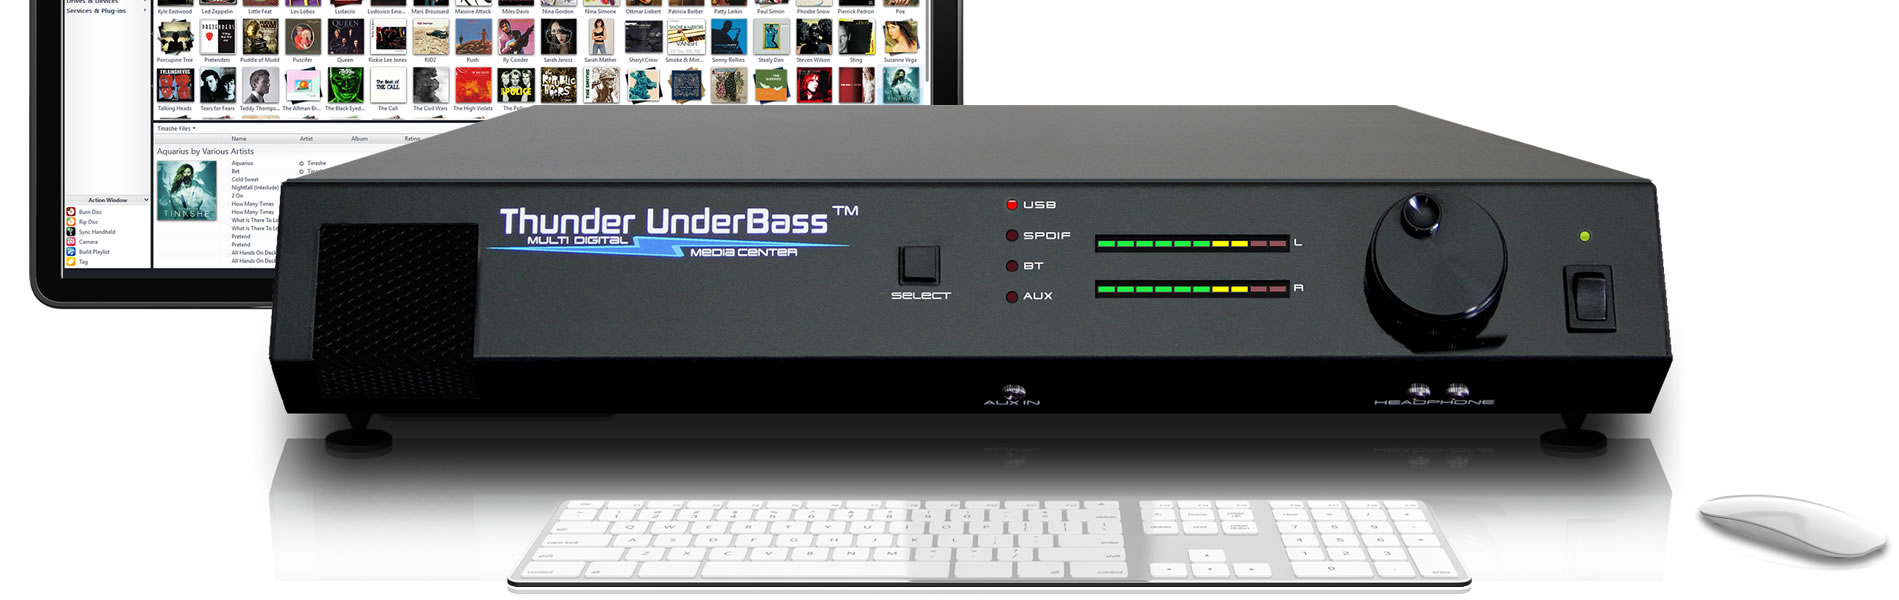 thunder underbass with a mac computer